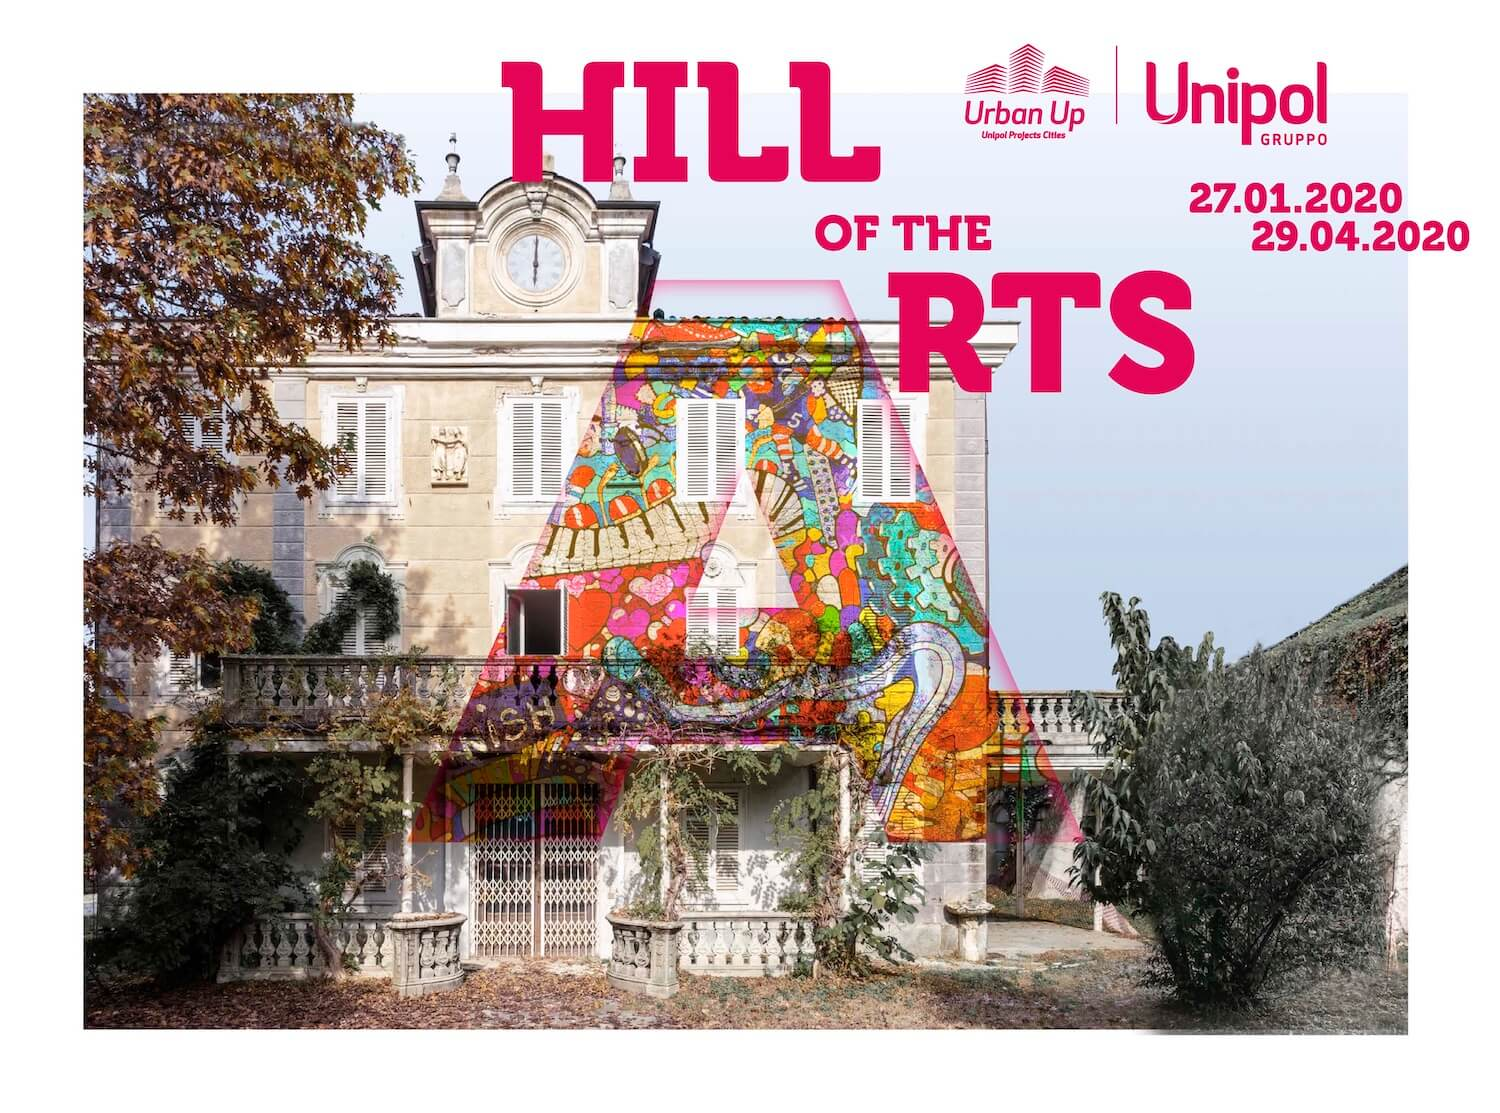 Concurso 'Hill of the Arts'